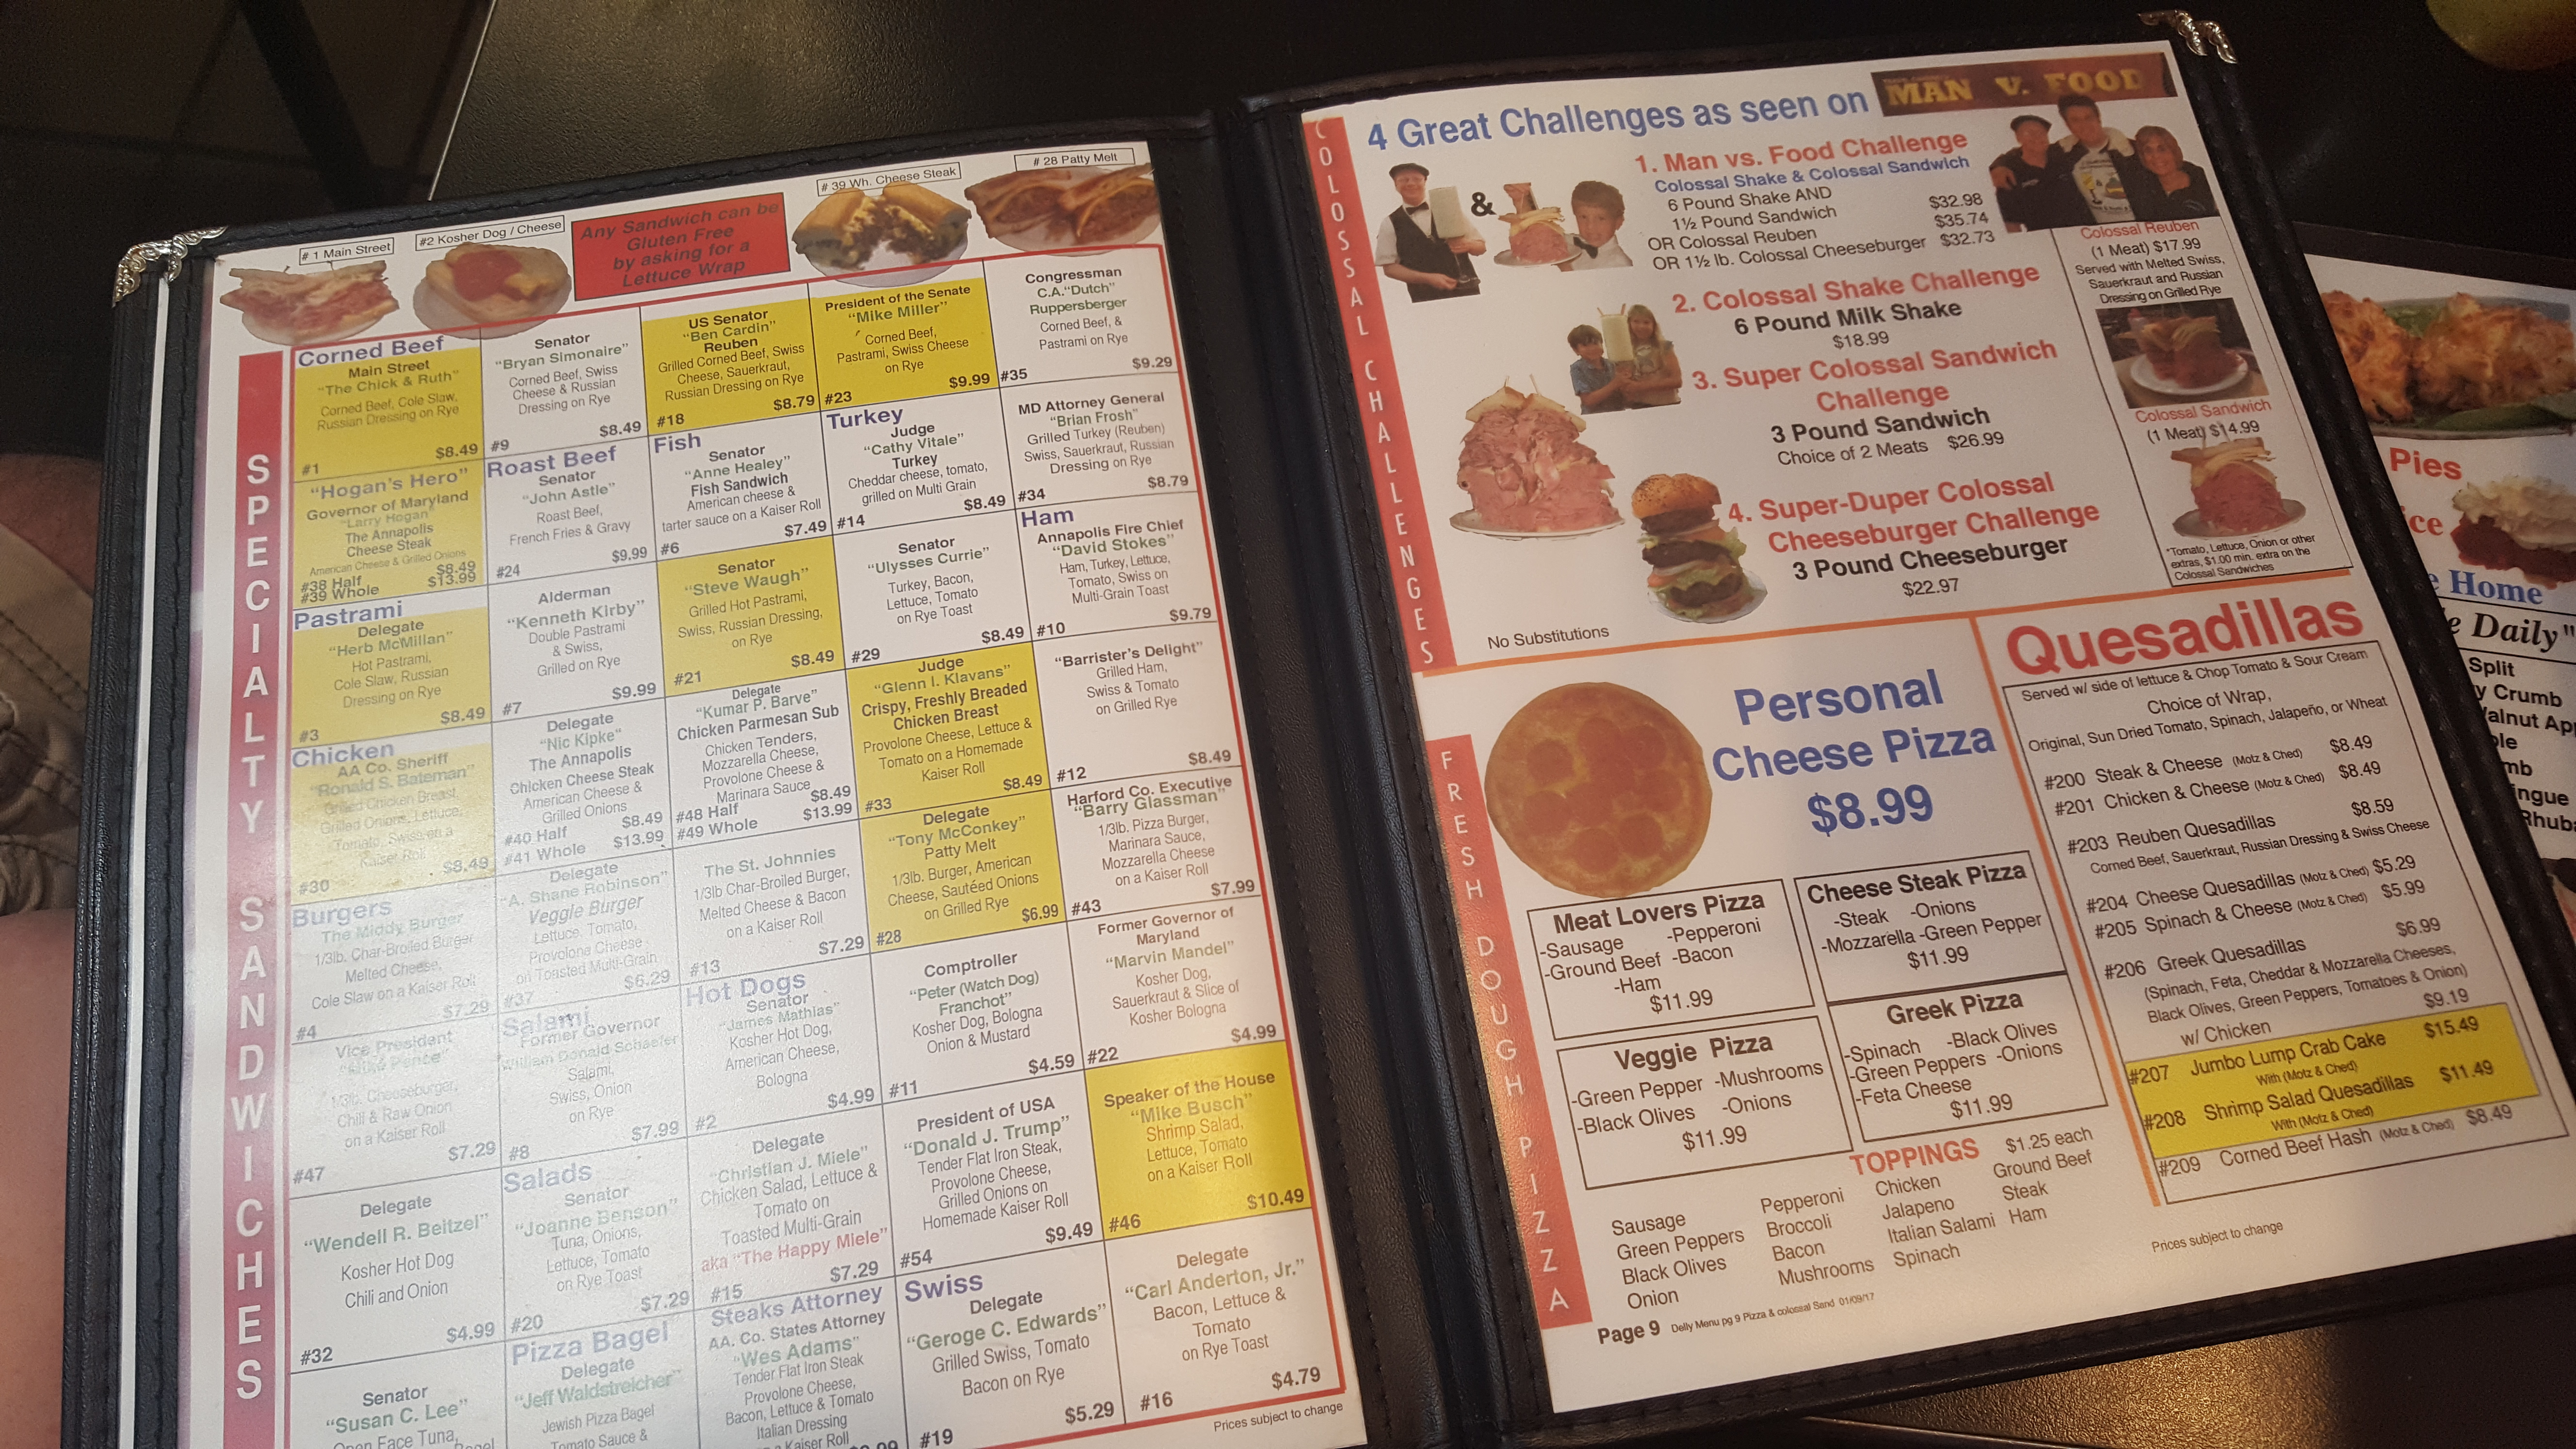 The crazy menu at Chick & Ruth's Delly, Annapolis, MD